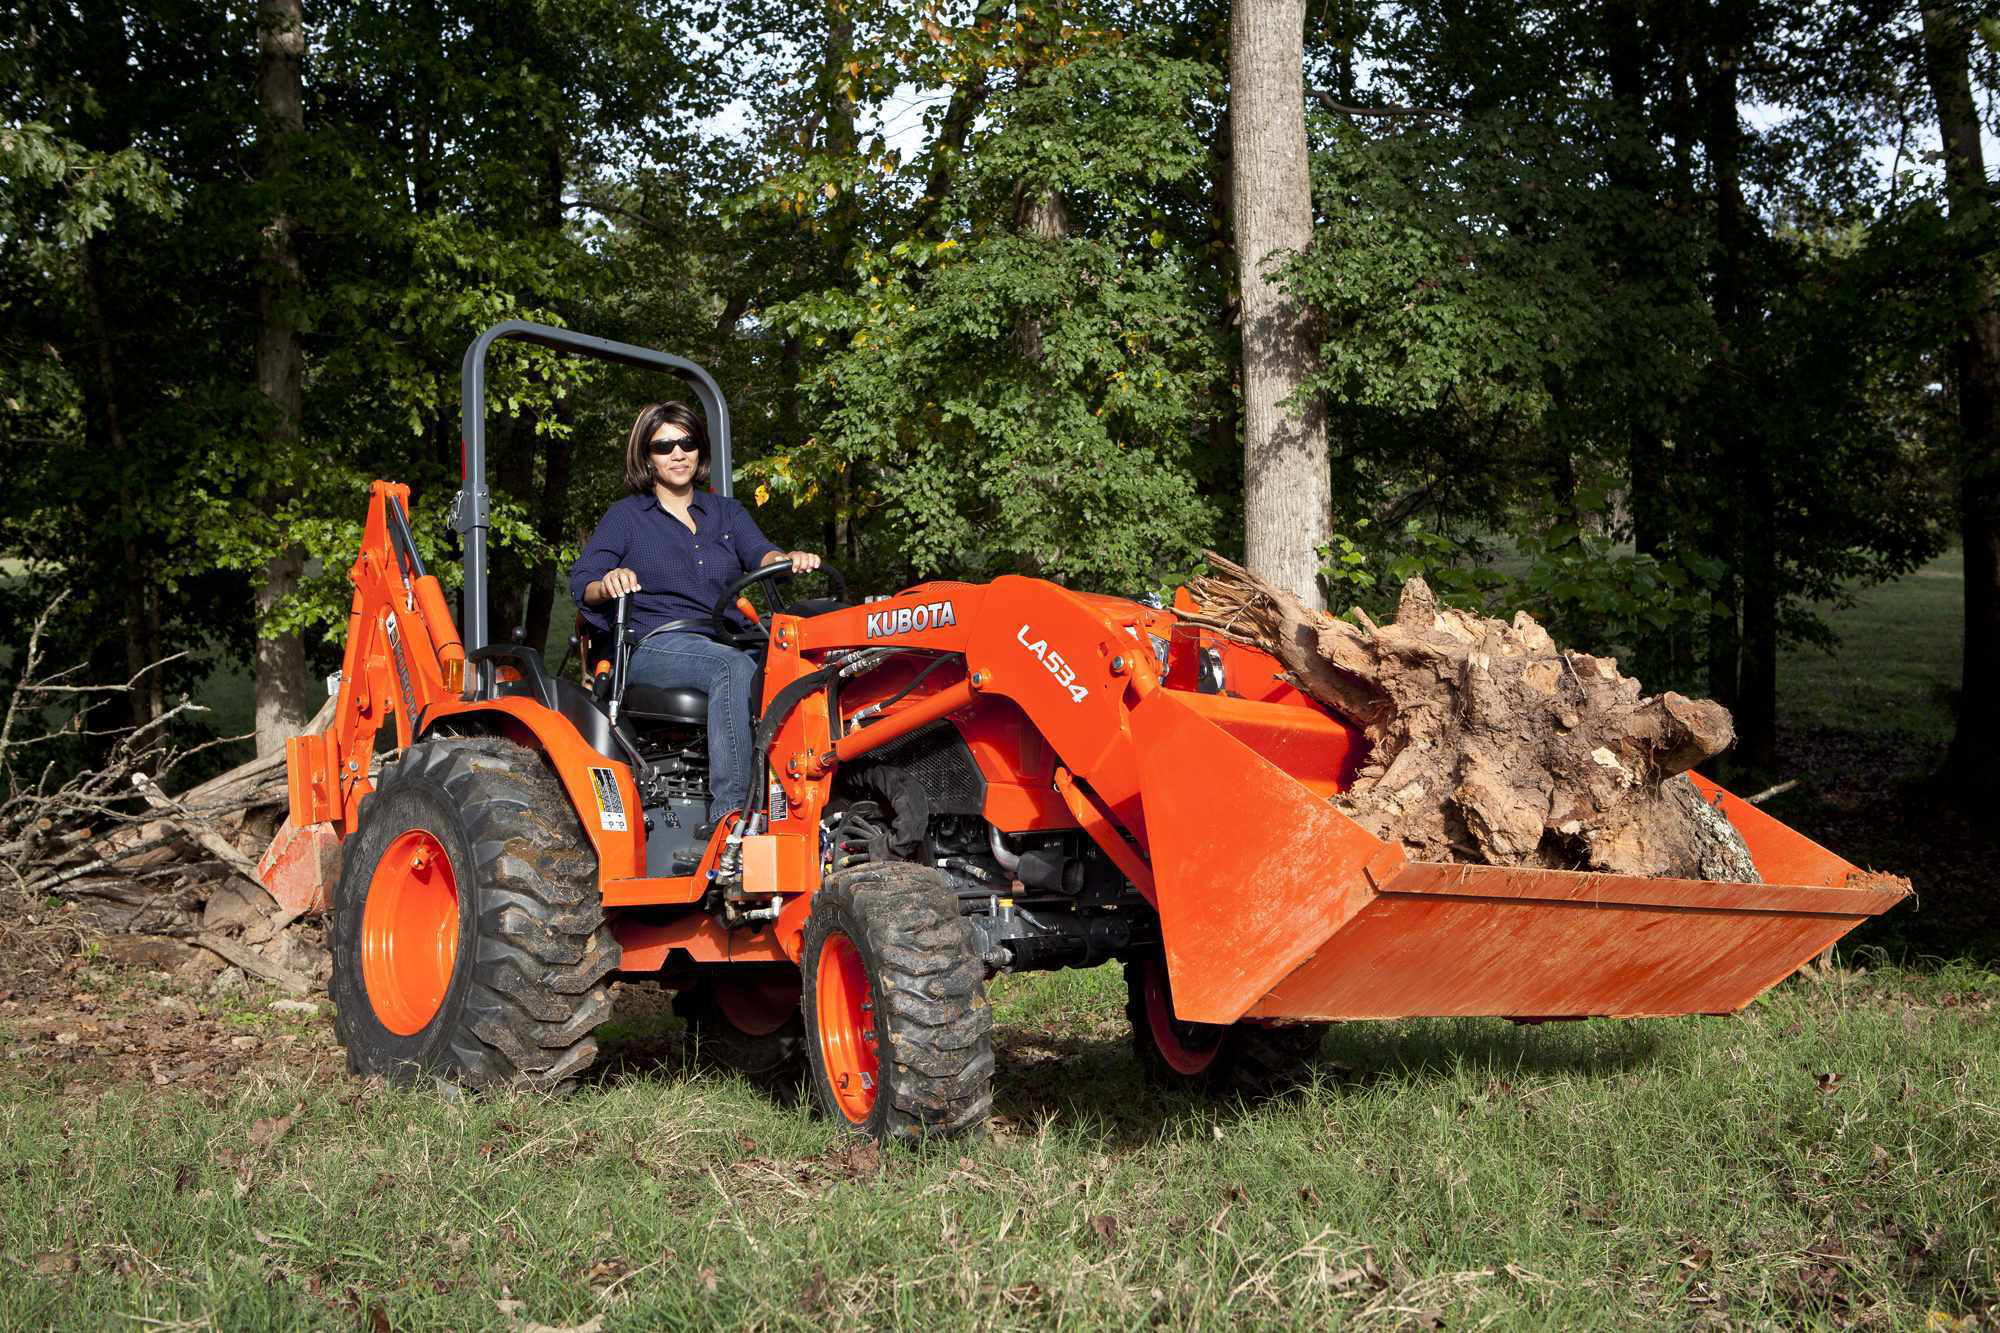 Kubota Intros Three Rops Compact Tractors To B50 Series